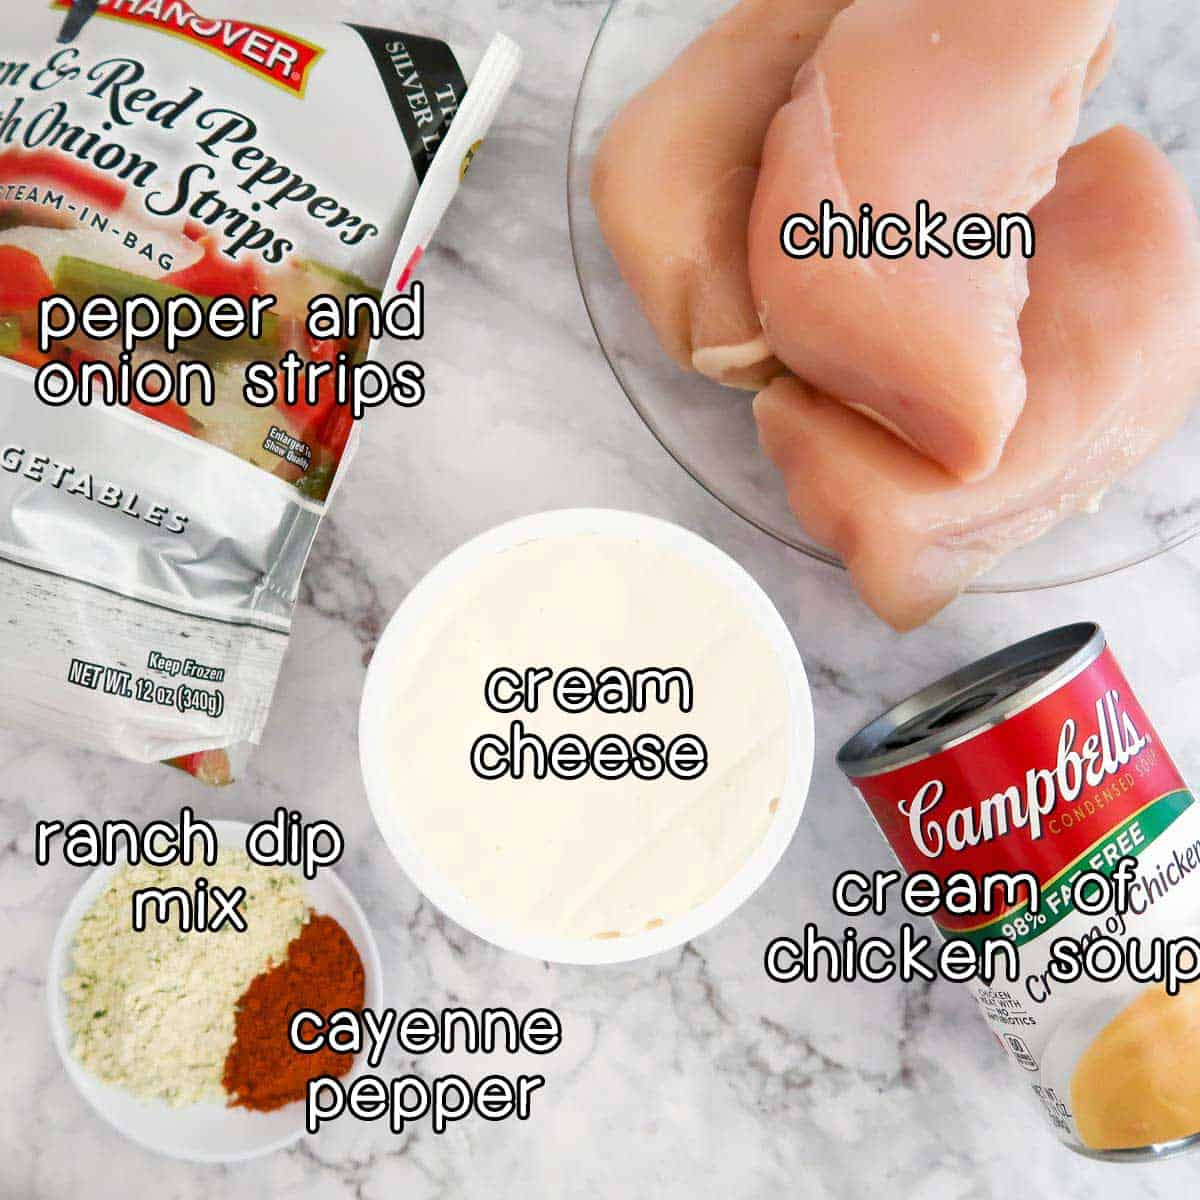 Overhead shot of ingredients- chicken, pepper and onion strips, cream cheese, cream of chicken soup, ranch dip mix, and cayenne pepper.